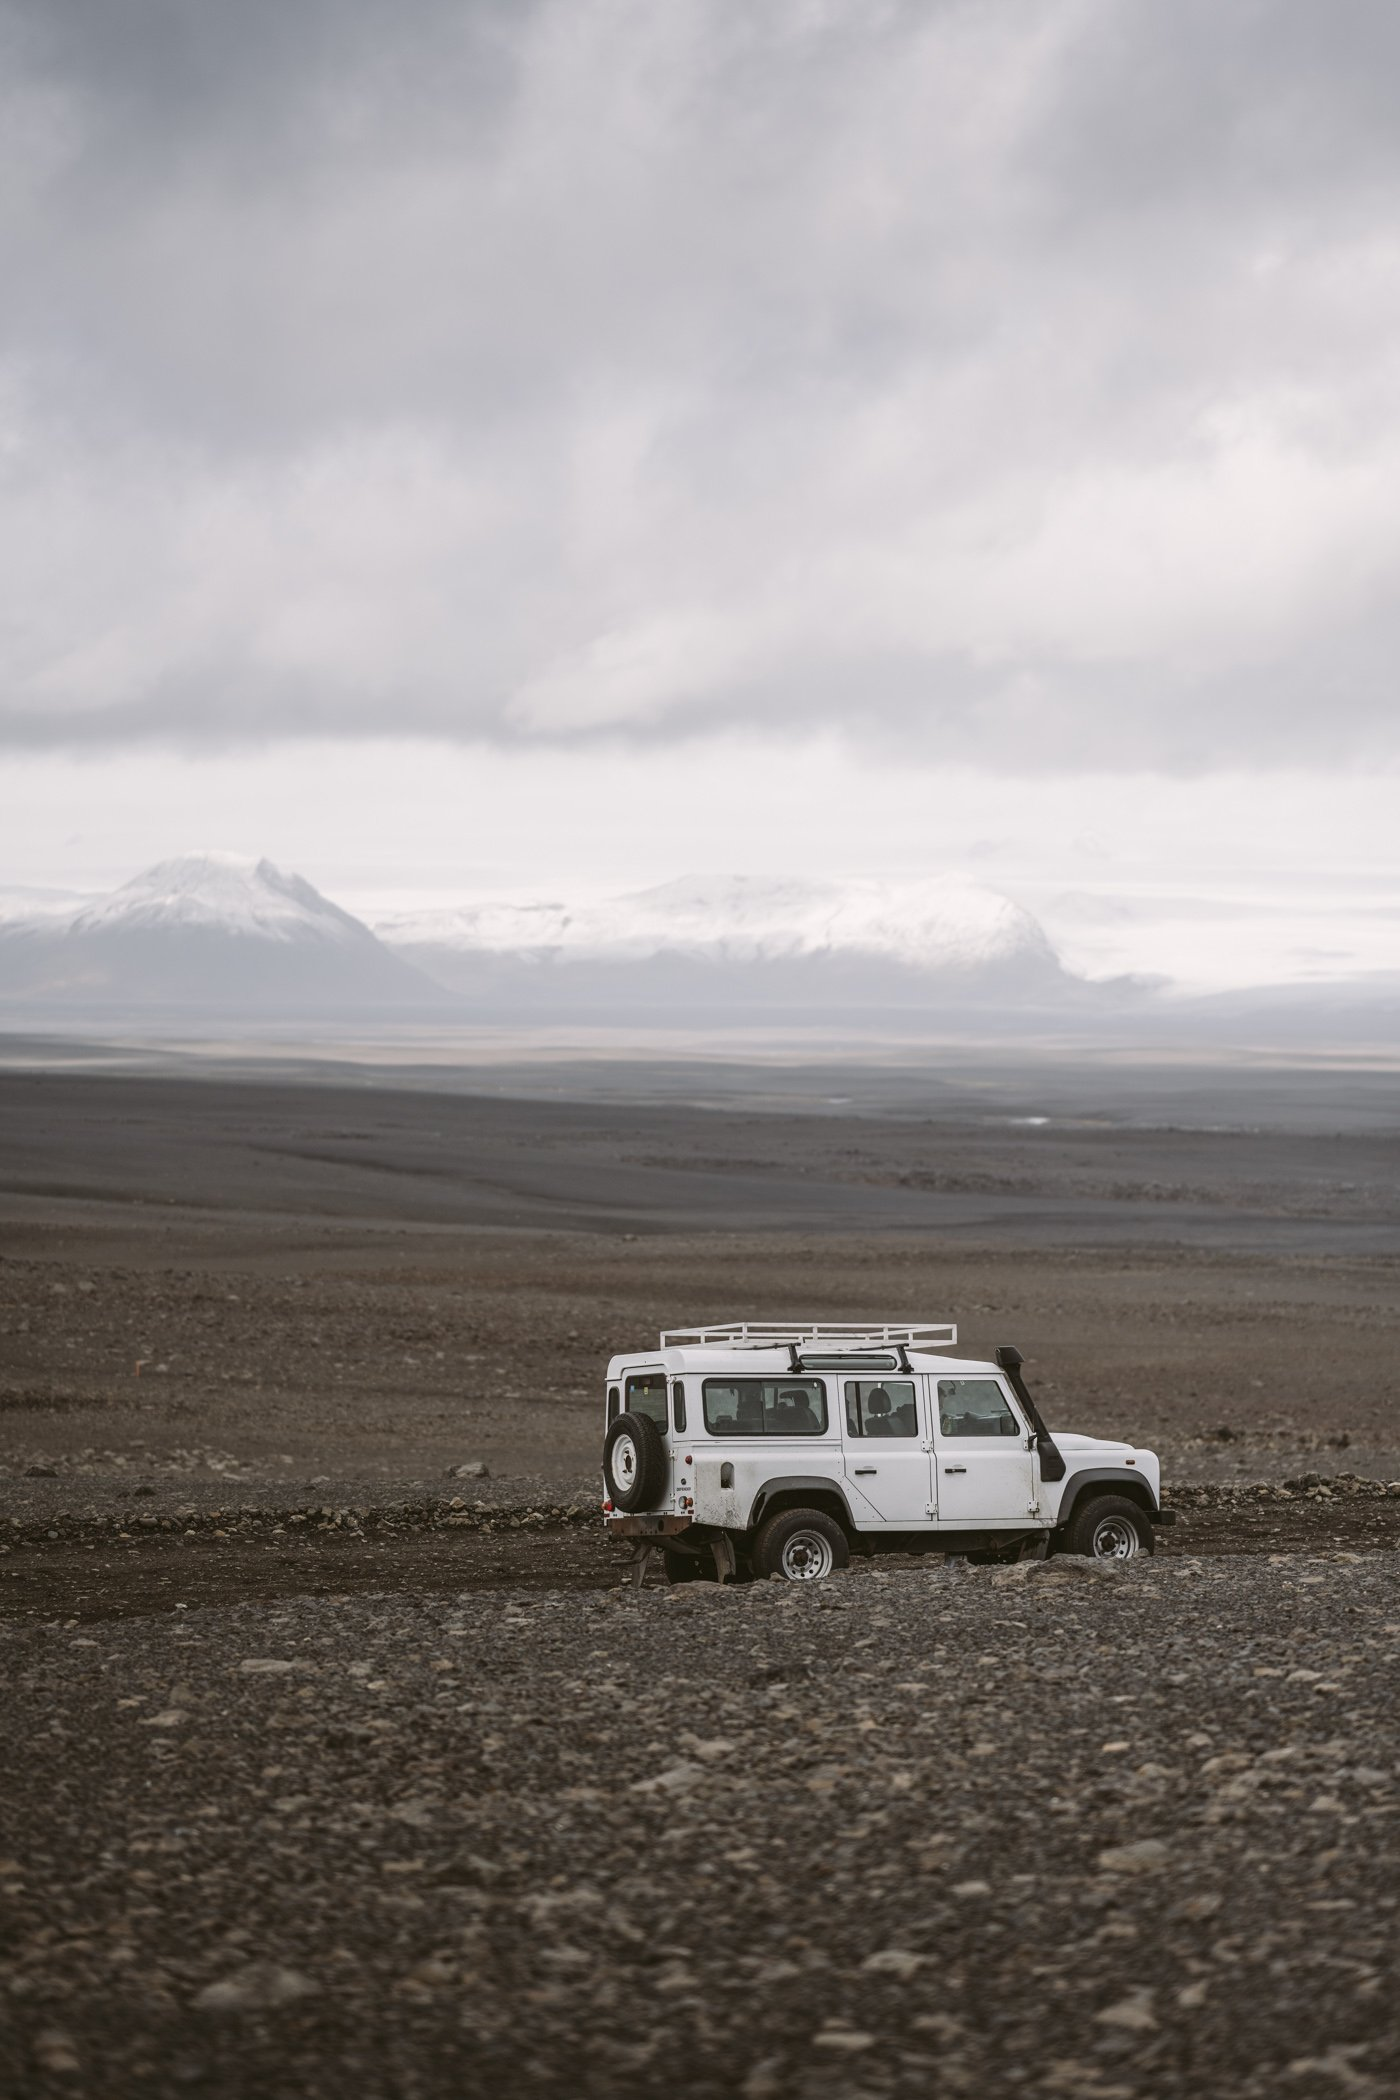 Our Landrover Defender in the highlands of Iceland